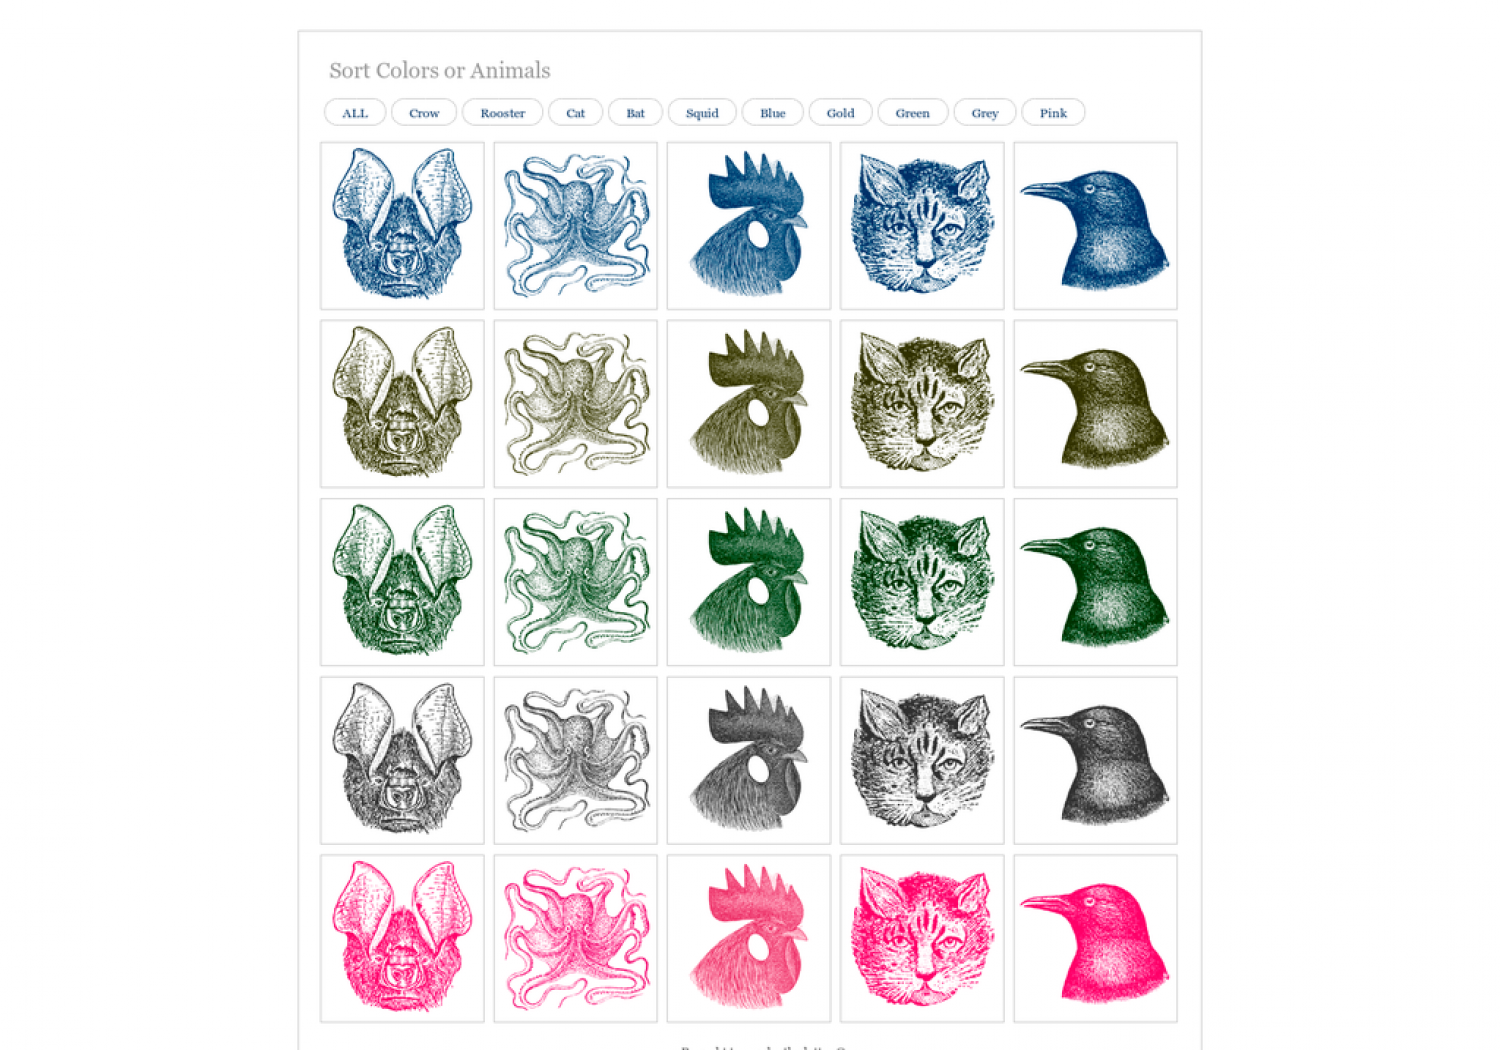 Where Birdy & Batty are Blue, Pink, or Green Infographic